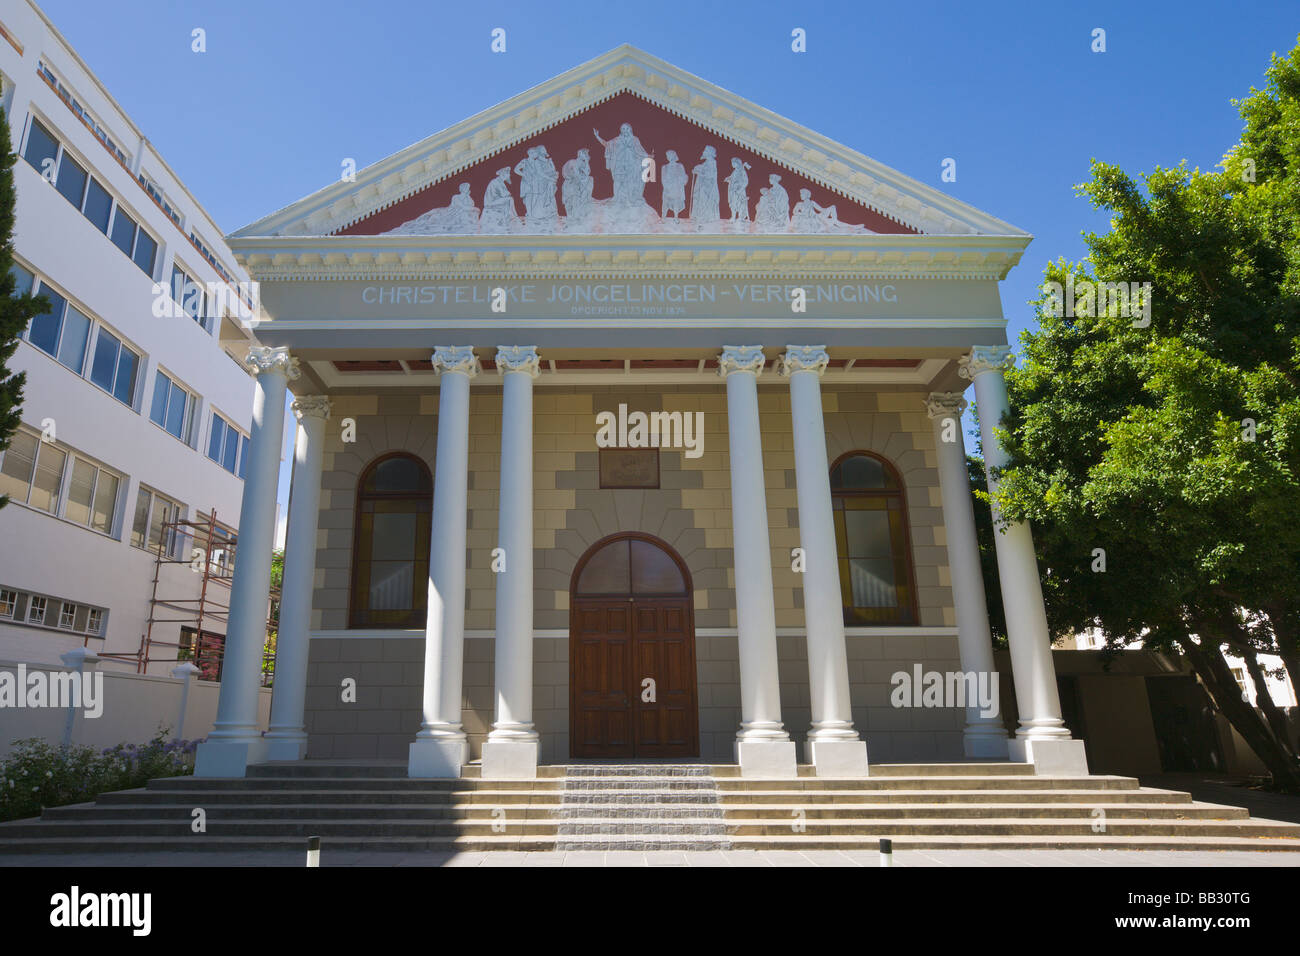 Christian Youth Association building, Stellenbosch, 'South Africa' - Stock Image